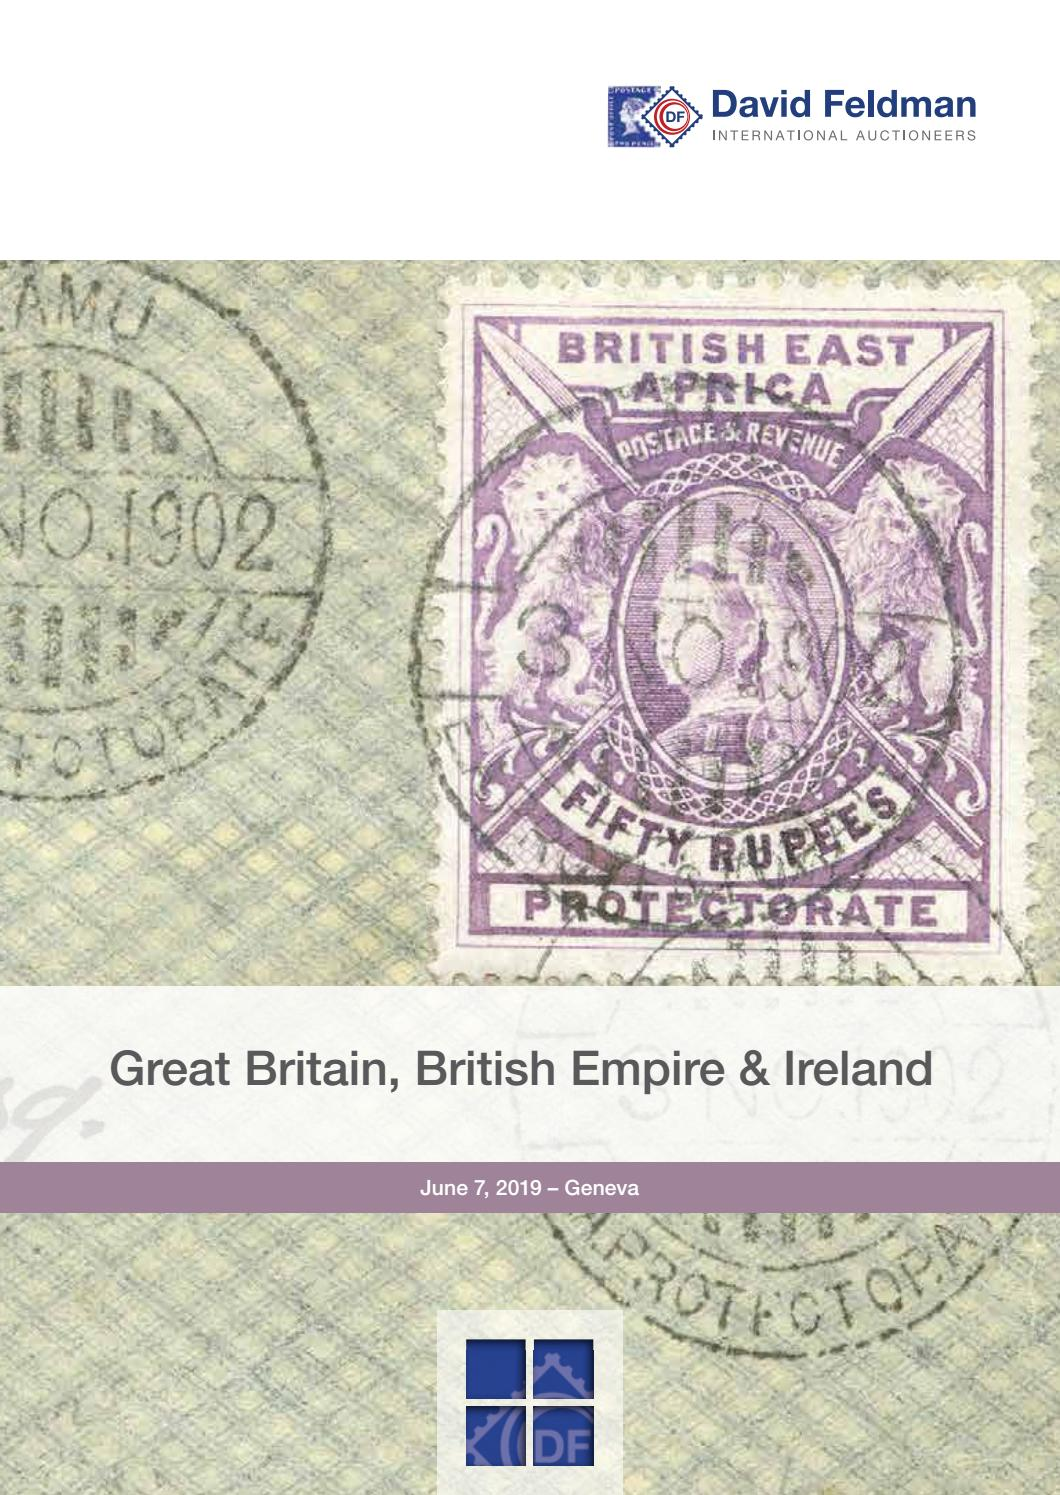 10 2x 1 8 Banknotes 08 50 Irish Pounds Issue 1928-1937 5